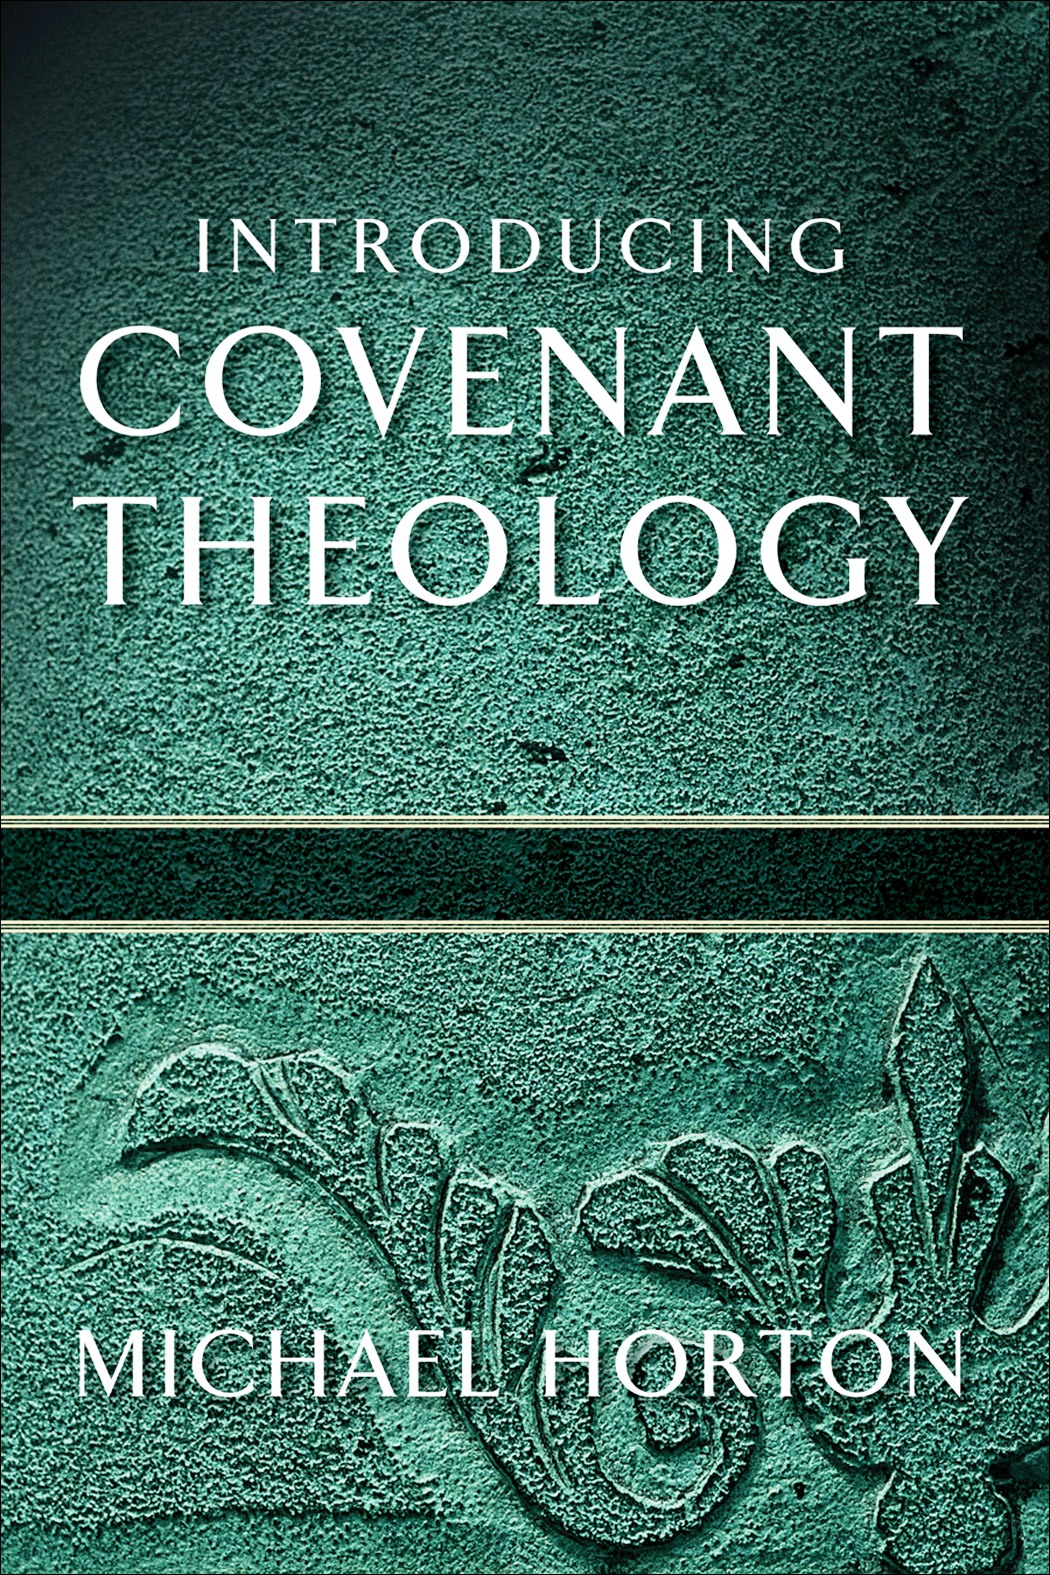 Covenant theology believes that god has structured his relationship with humanity by covenants rather than dispensations for example in scripture we